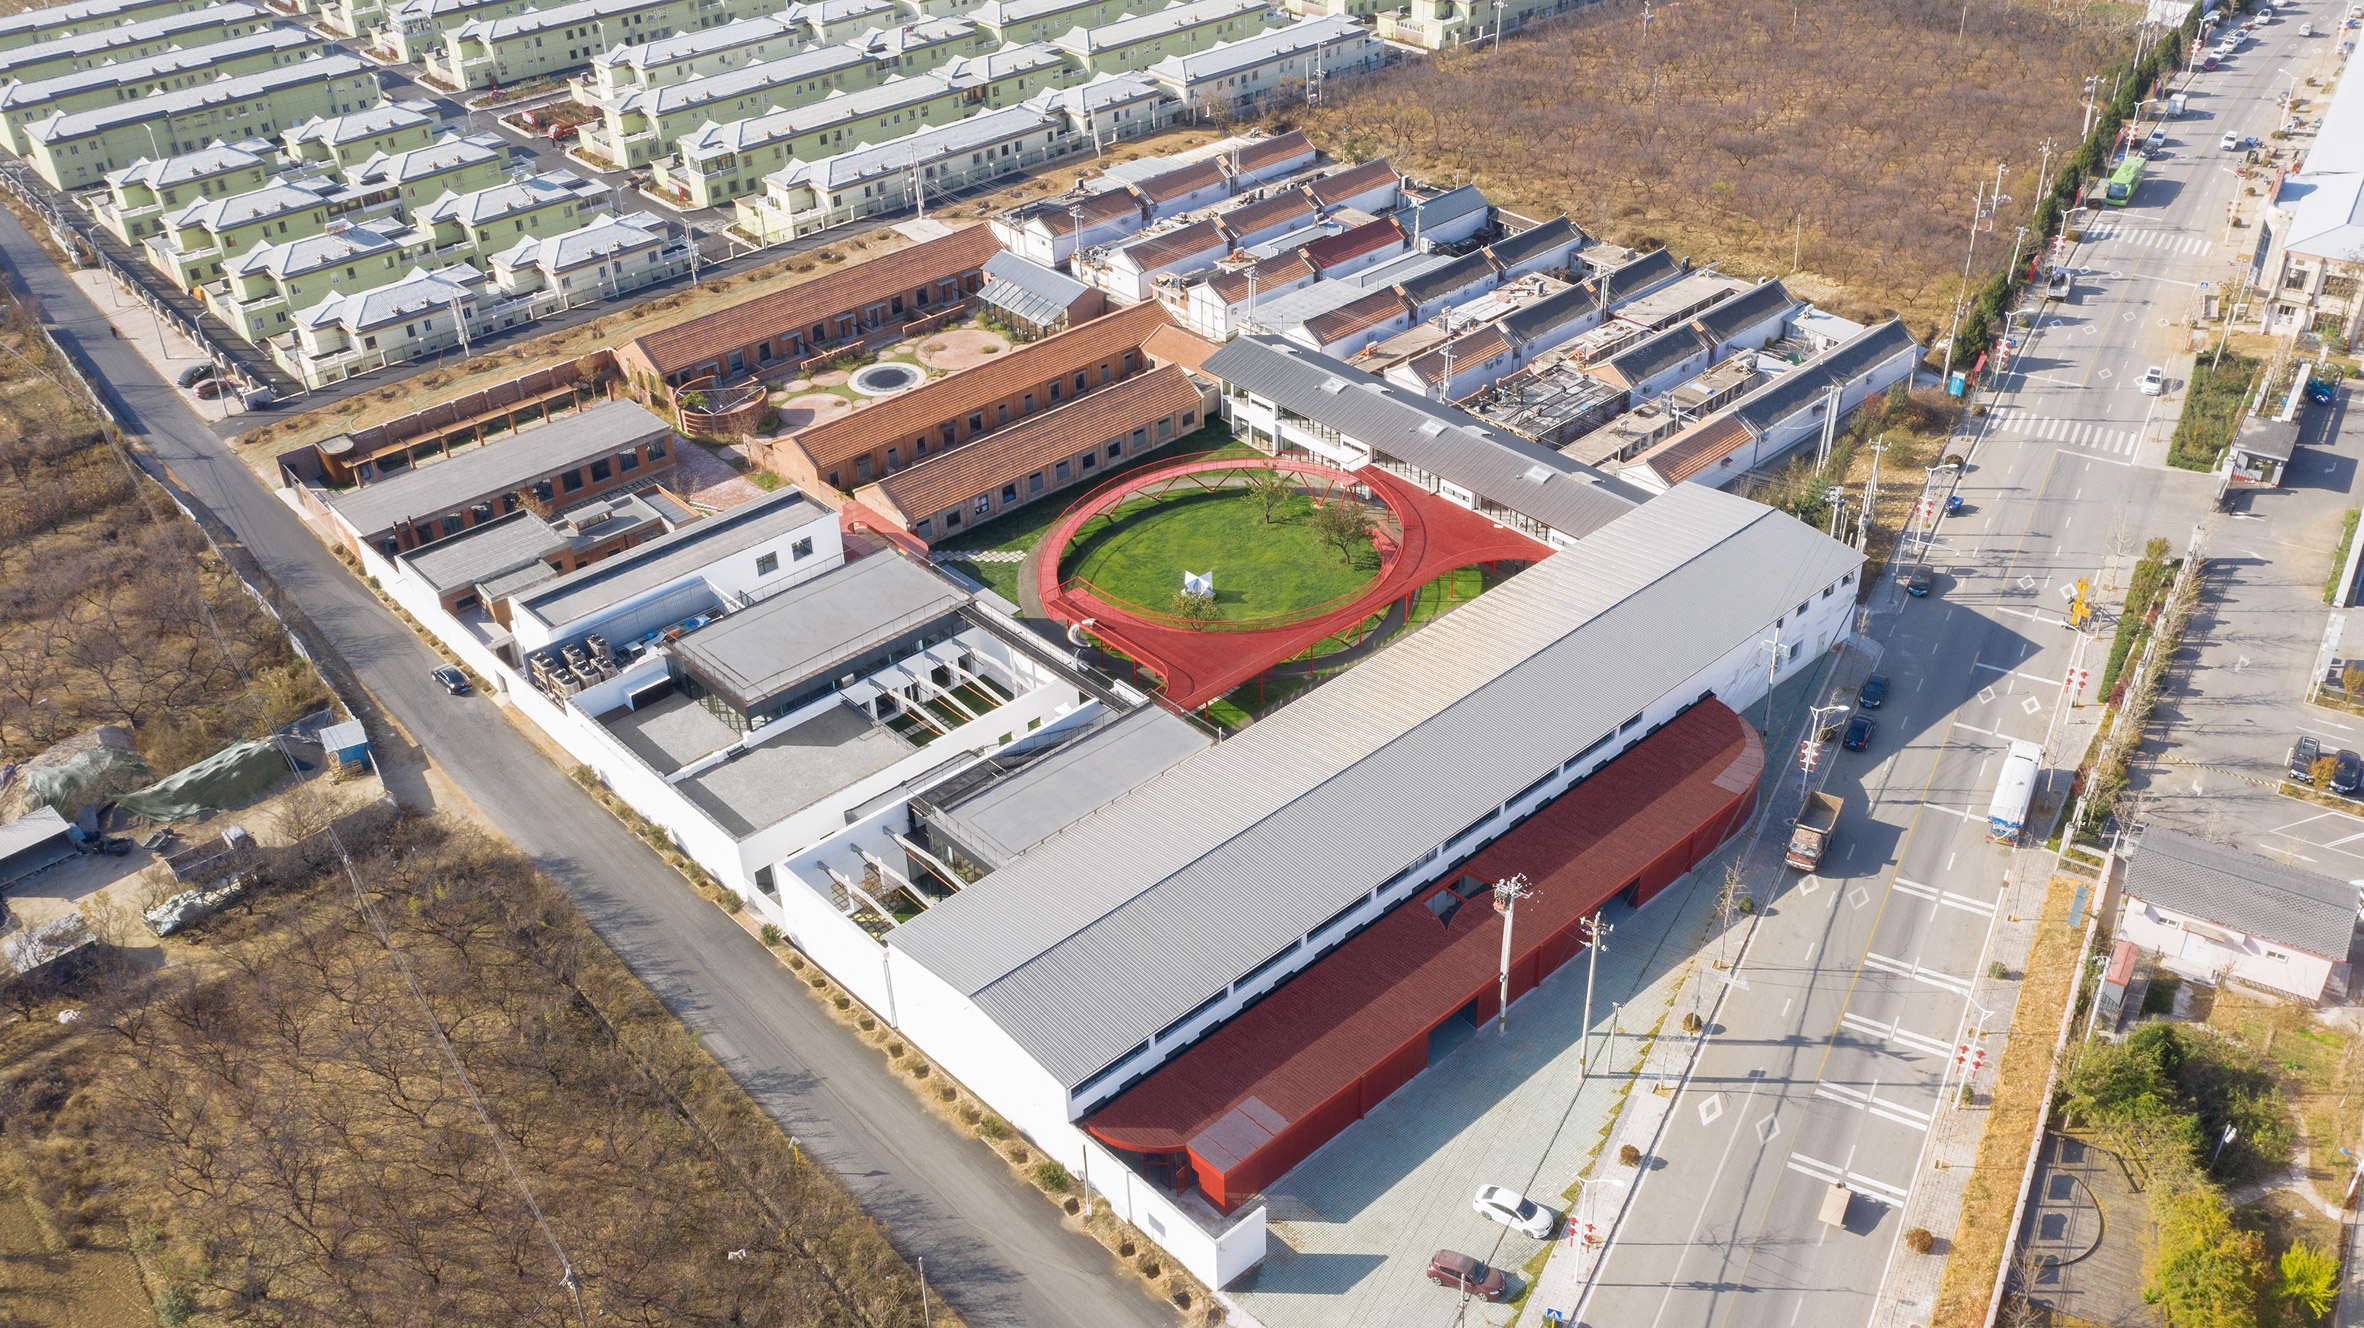 An aerial view of a Chinese youth centre